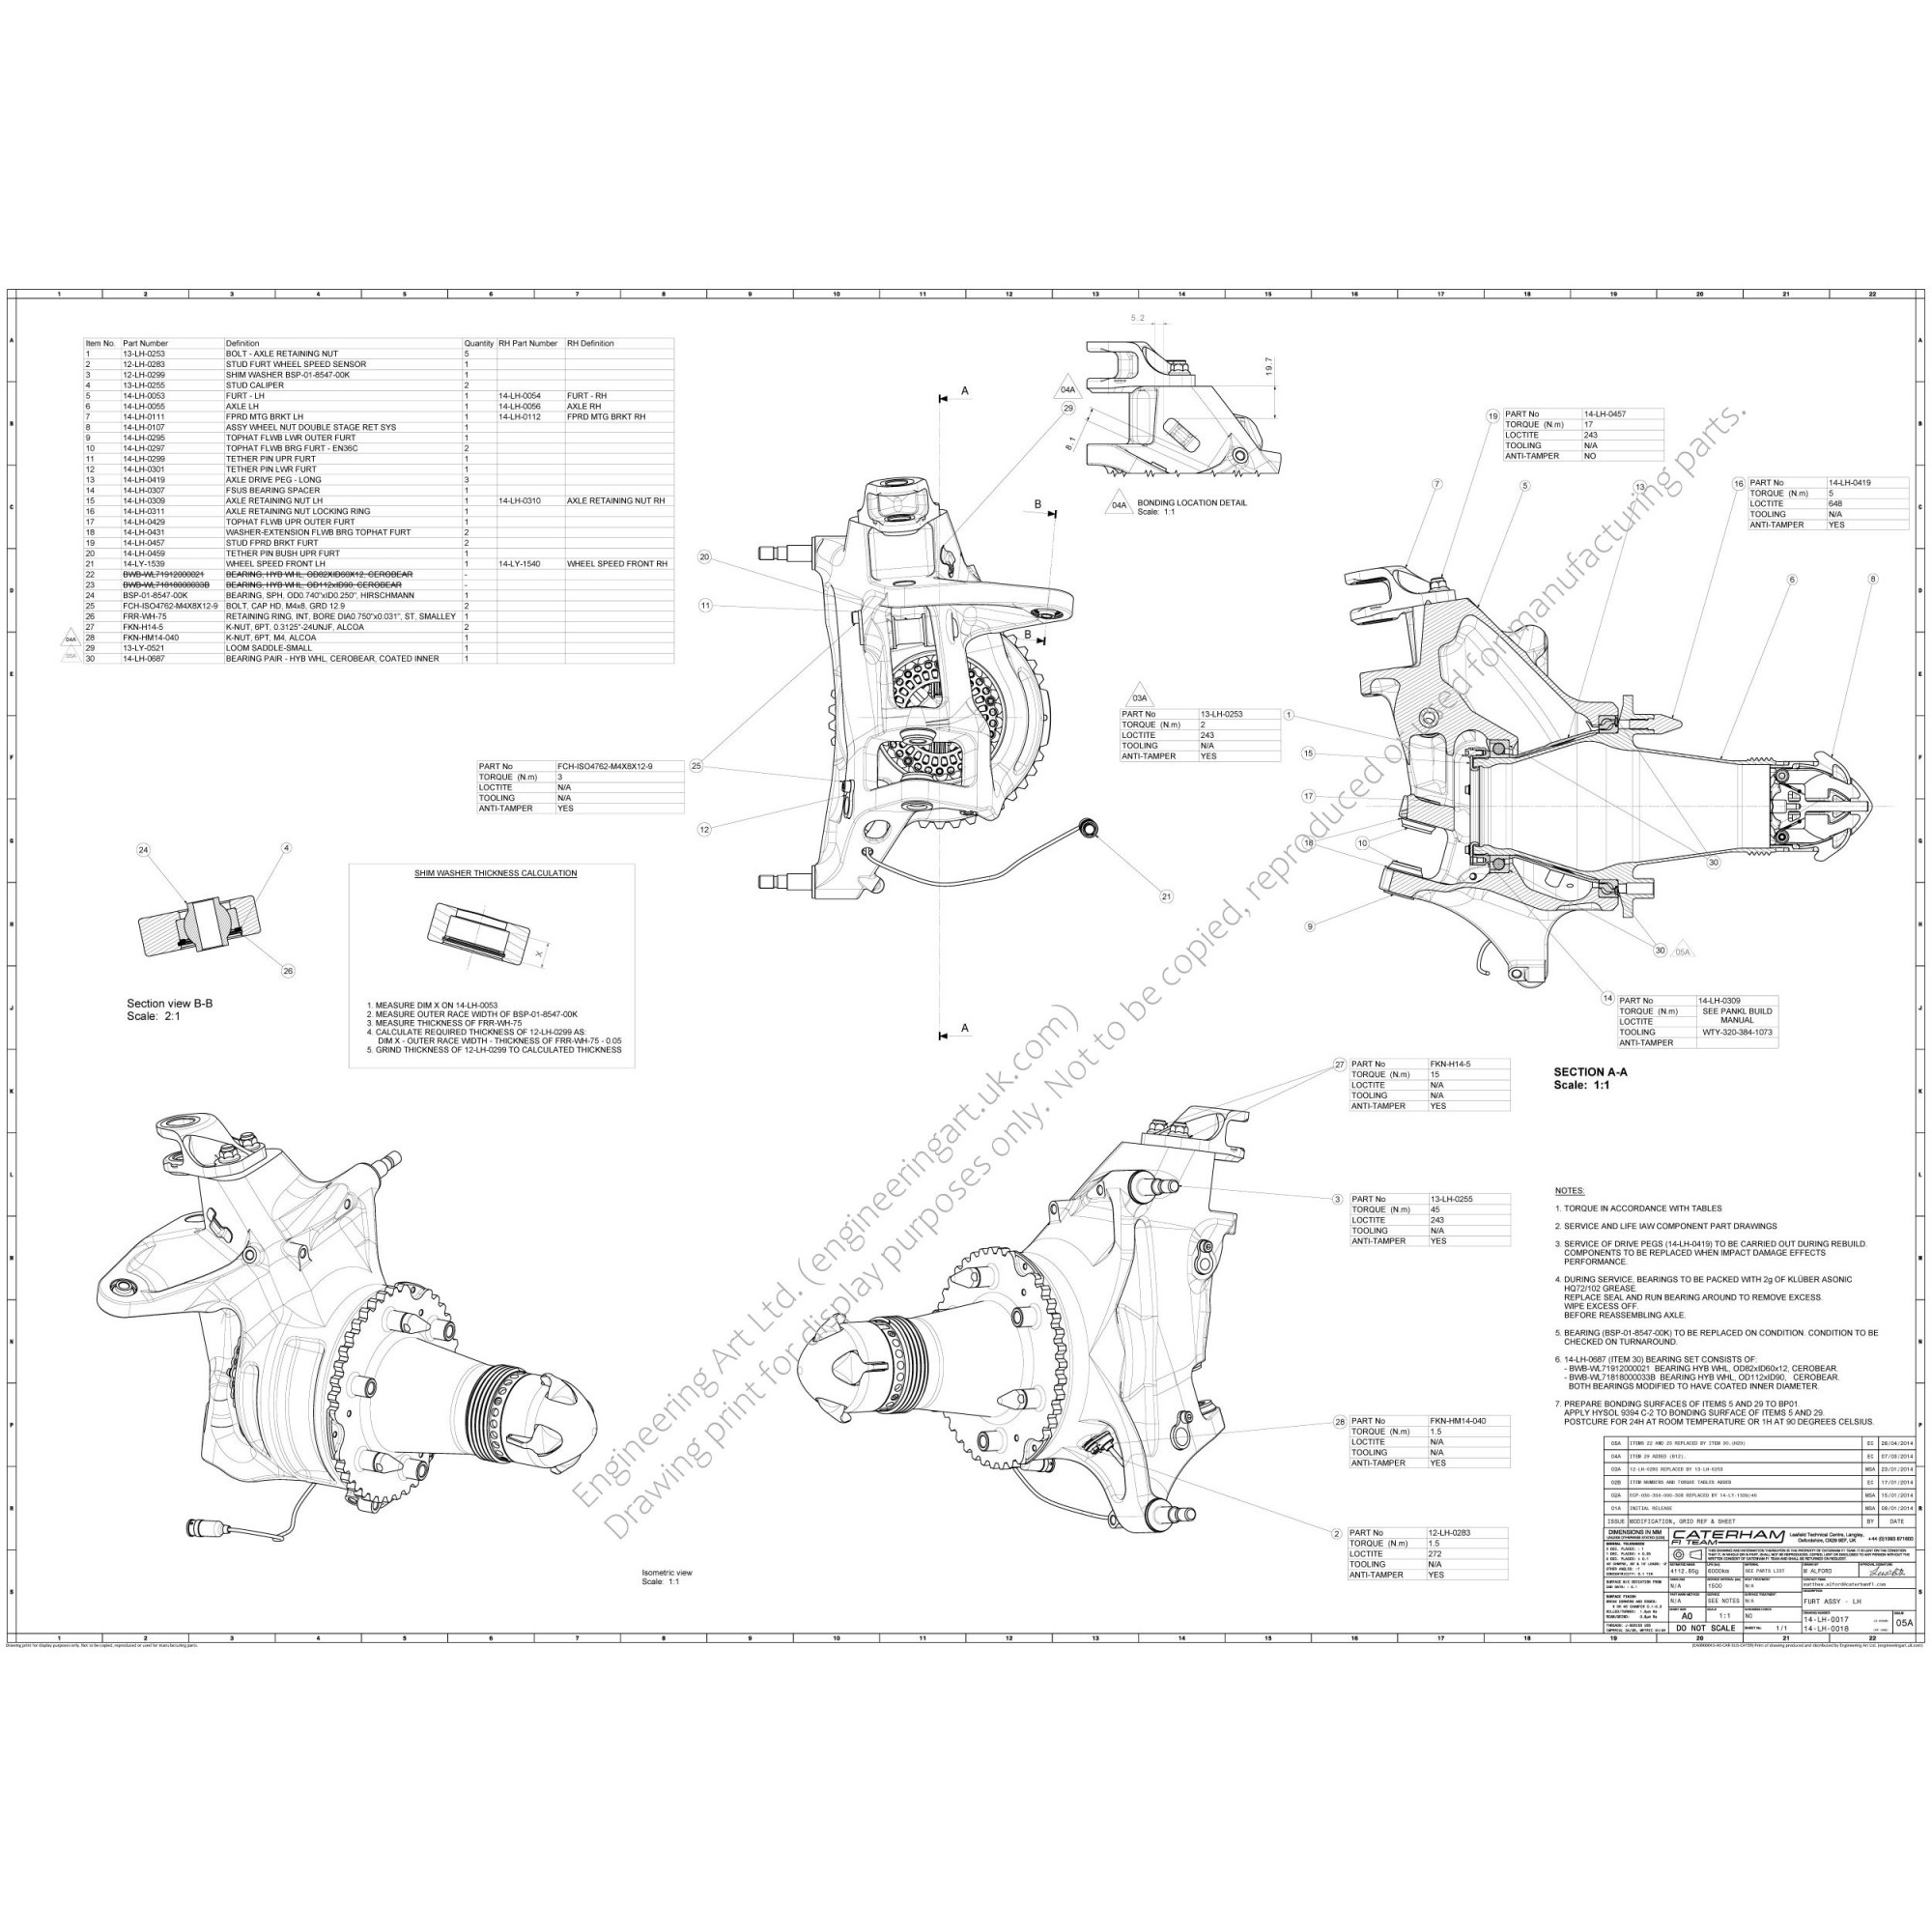 hight resolution of a0 size drawing showing the front suspension upright assembly for the caterham ct05 formula 1 car design engineer matthew alford